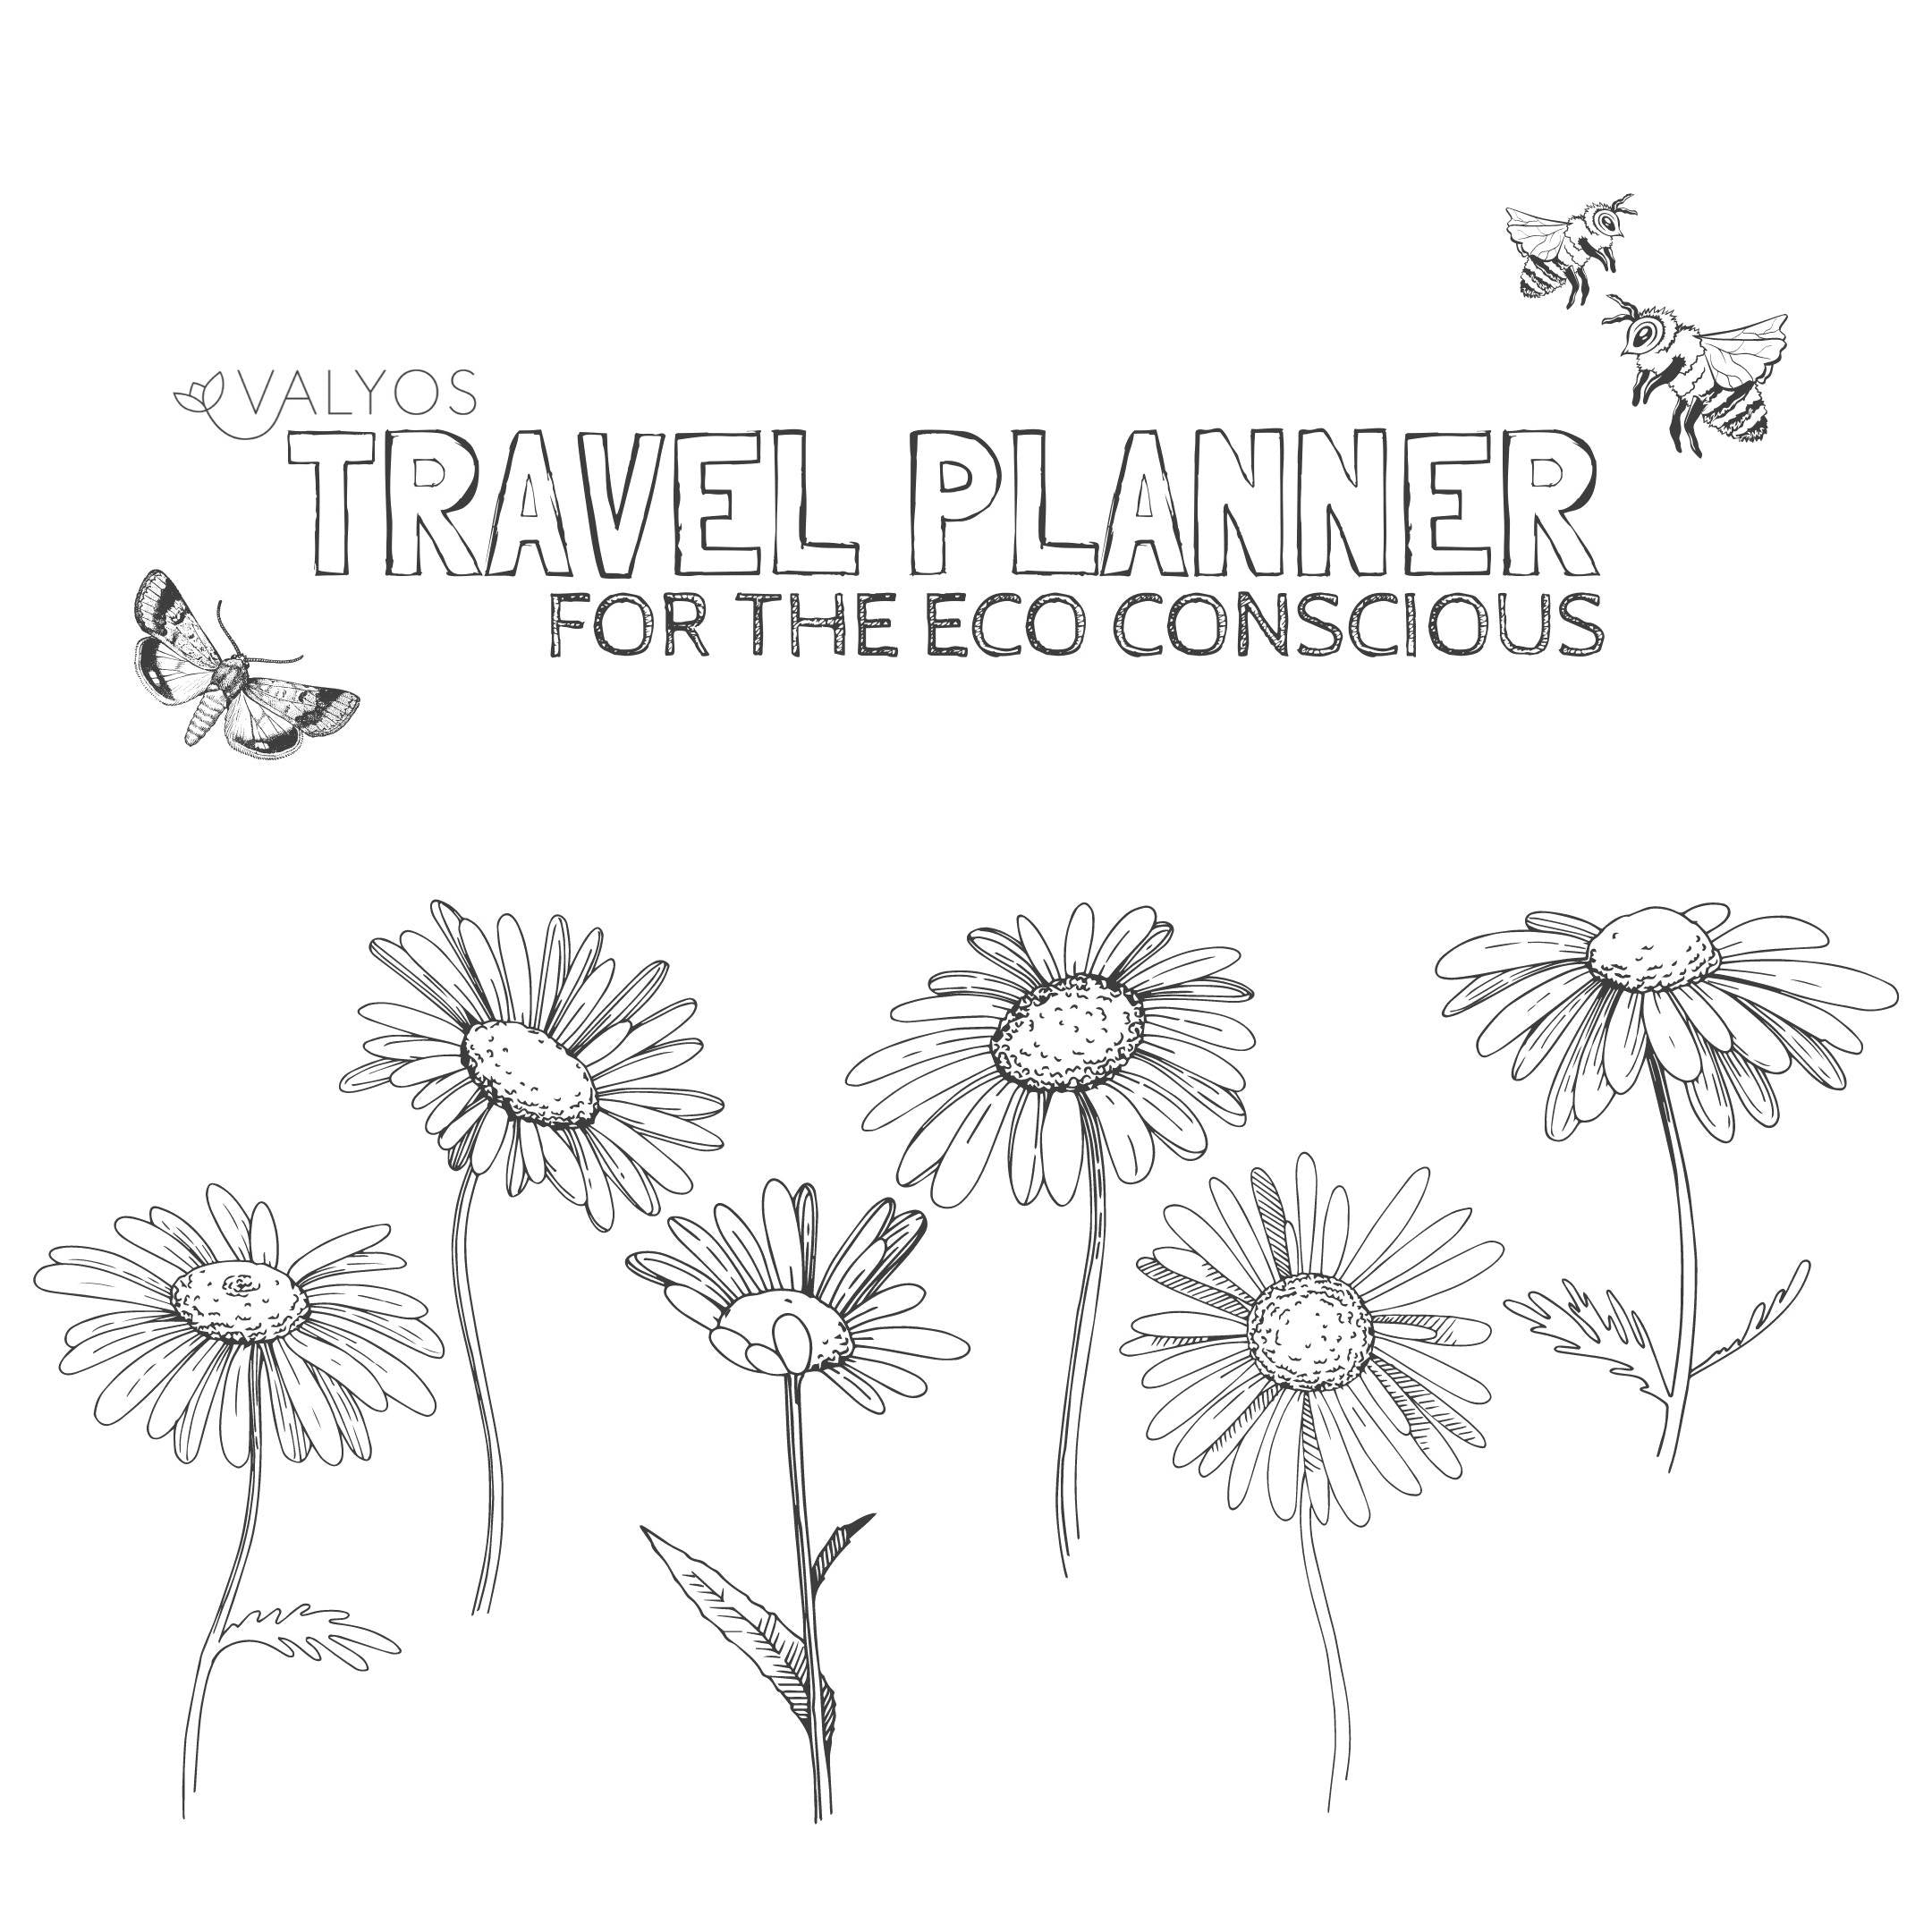 Travel Planner for the Eco Conscious